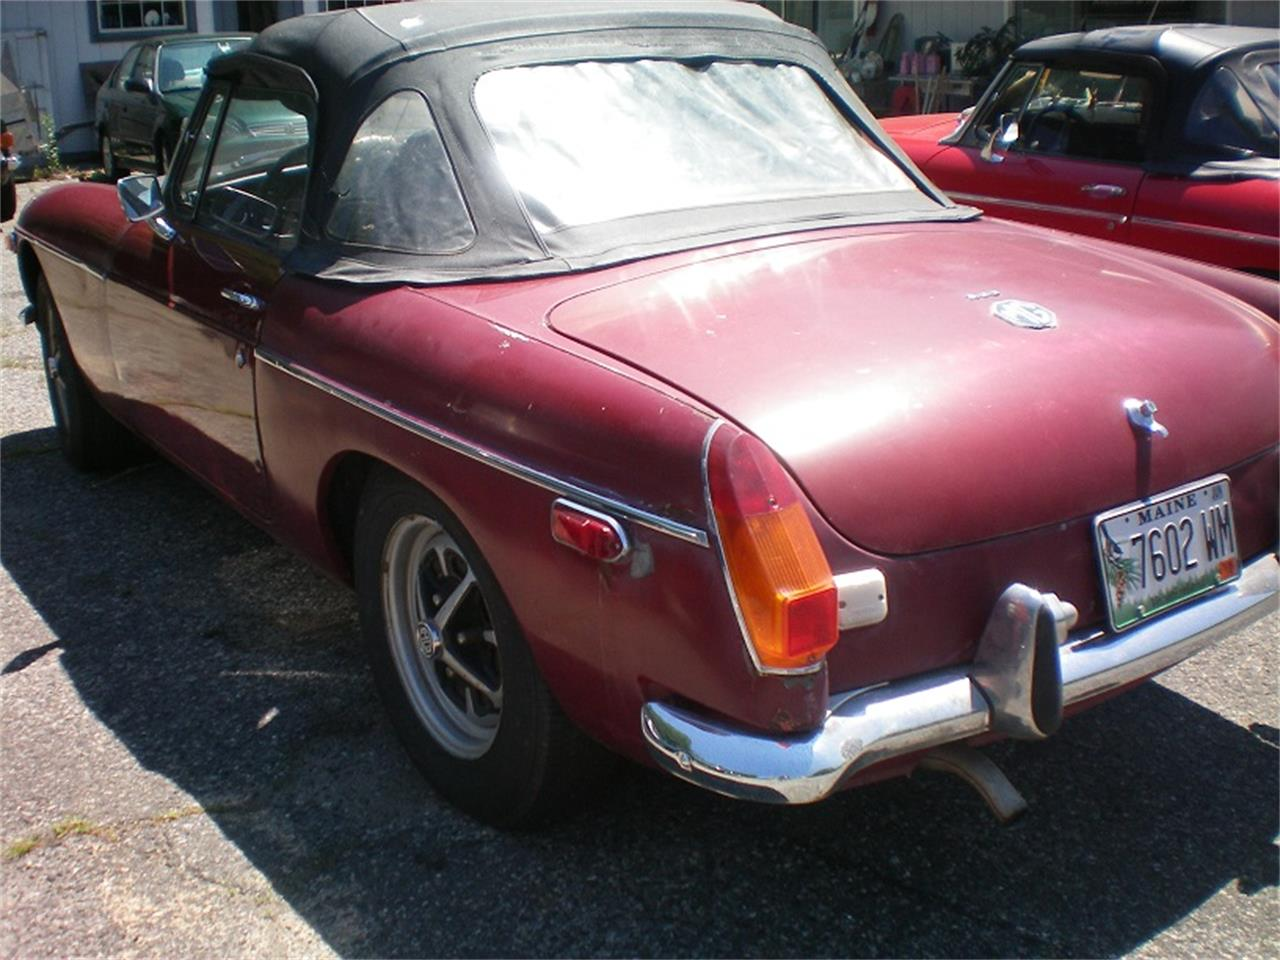 1974 MG MGB for sale in Rye, NH – photo 3